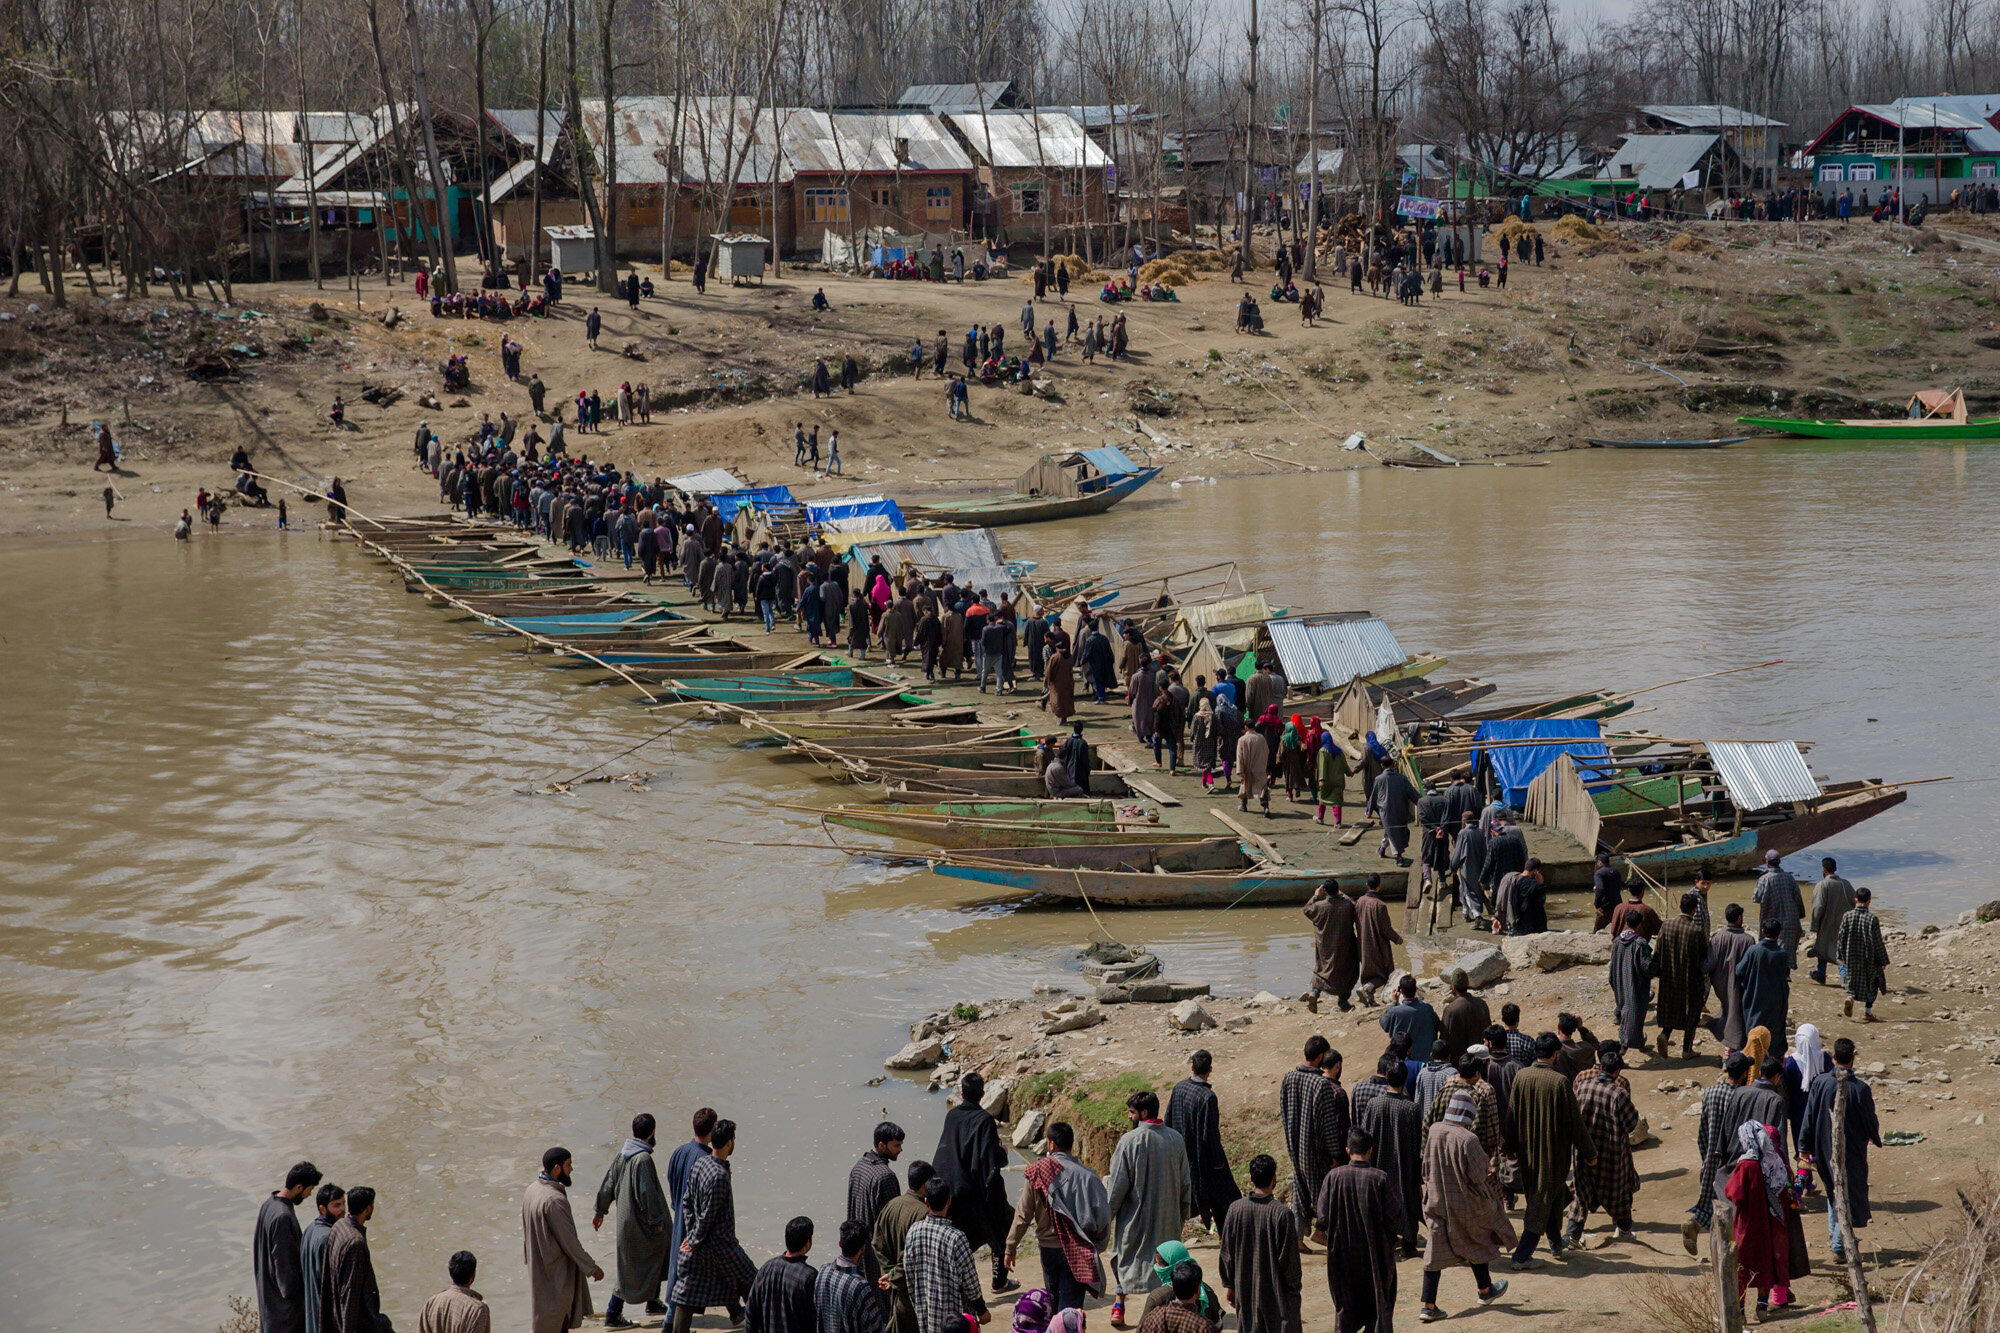 Kashmiri villagers cross a temporary bridge made by lining up boats to make way for people to cross a river to attend funeral of Shabir Ahmad, a suspected rebel in Awantipora, 30 kilometres (18 miles) south of Srinagar, Indian controlled Kashmir, March 16, 2018. (AP Photo/Dar Yasin)